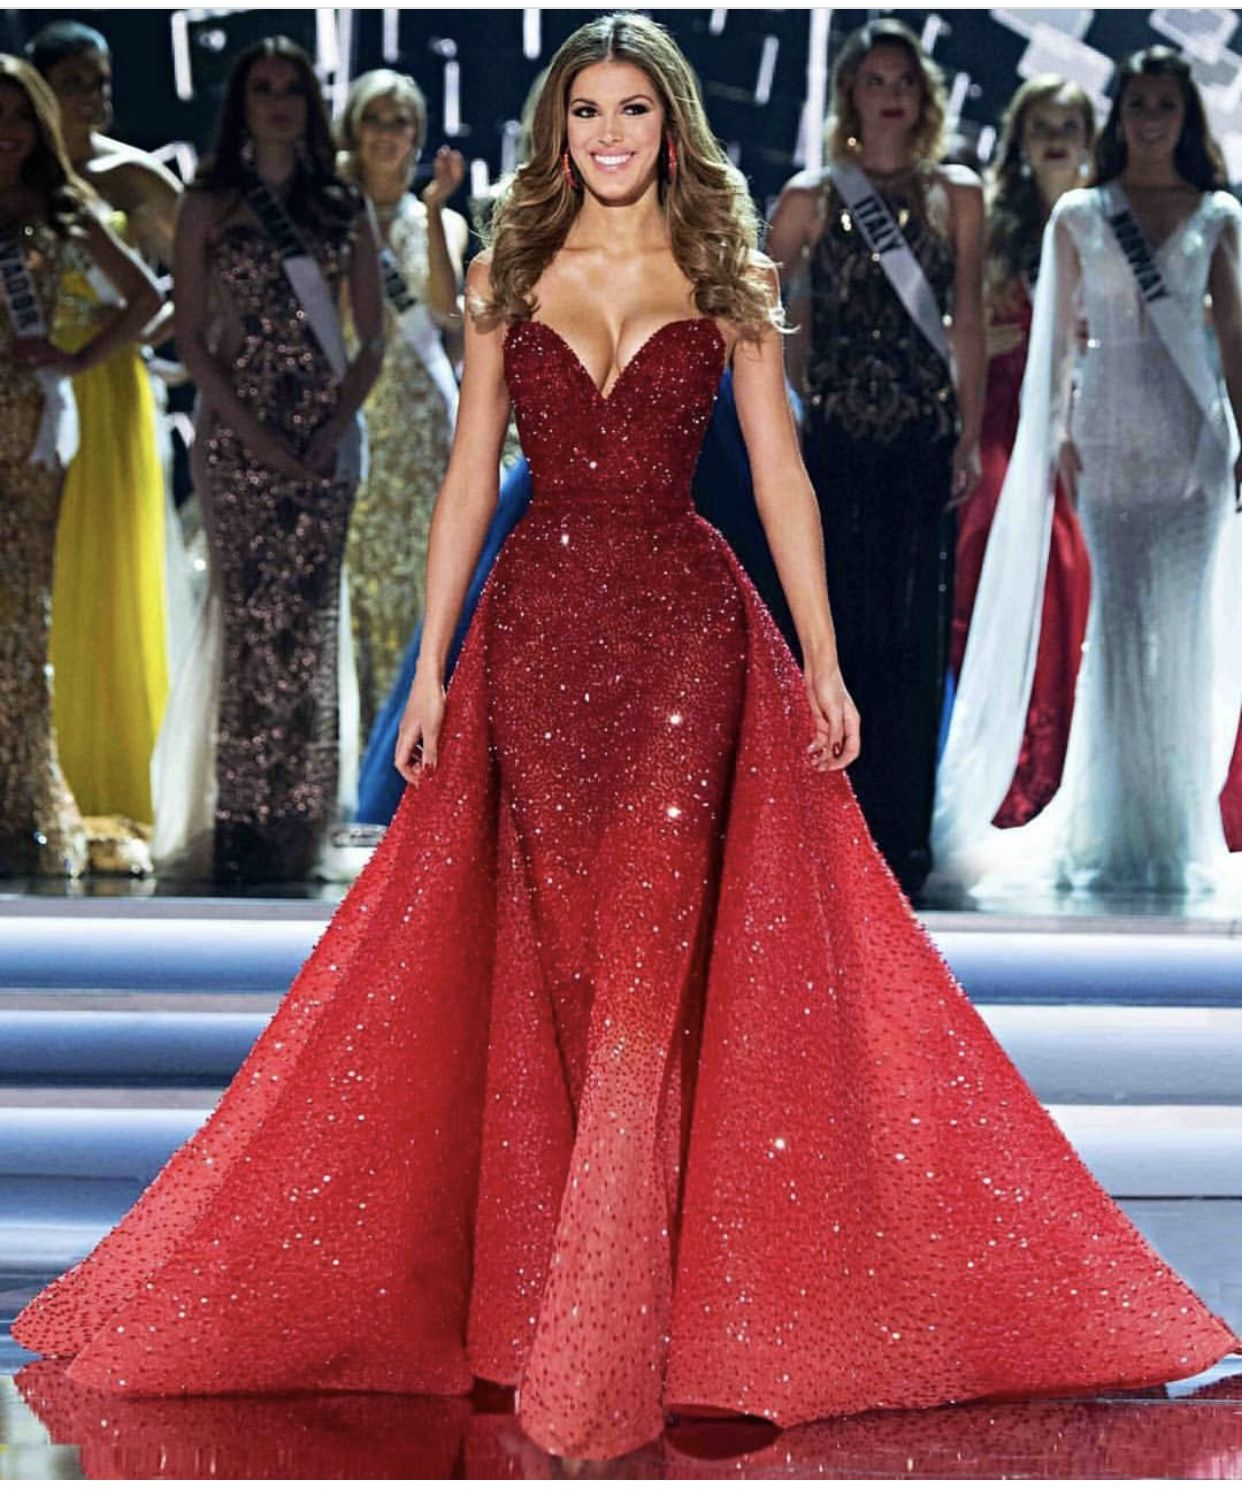 Red couture dress | Fashion & Cutest Things | Pinterest | Gowns ...